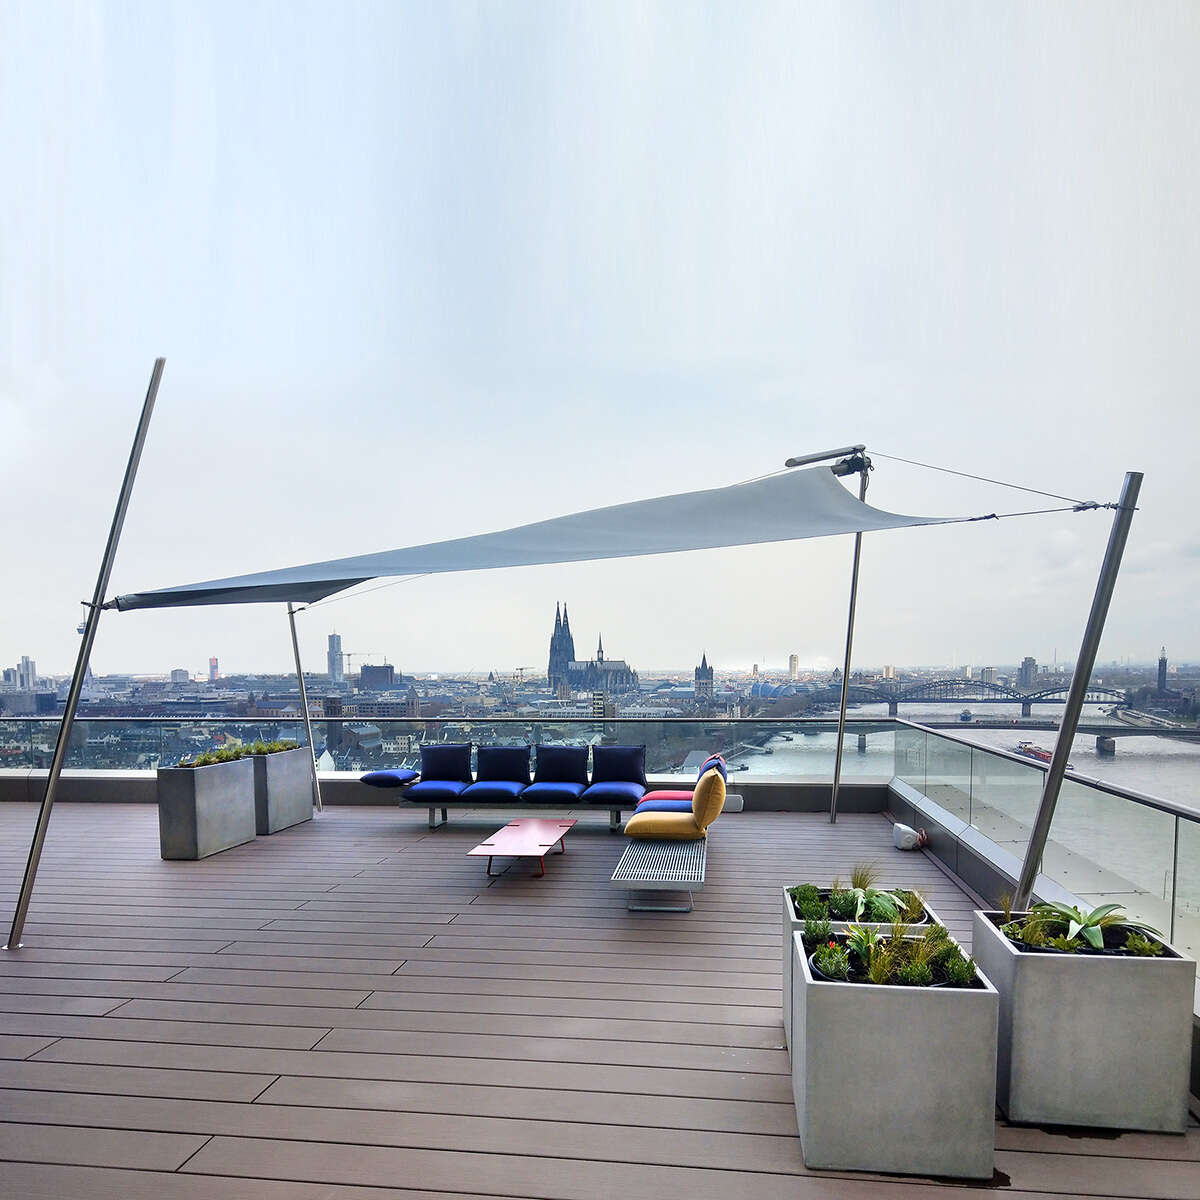 MGC0 Sun Square Cologne Roof Terrace